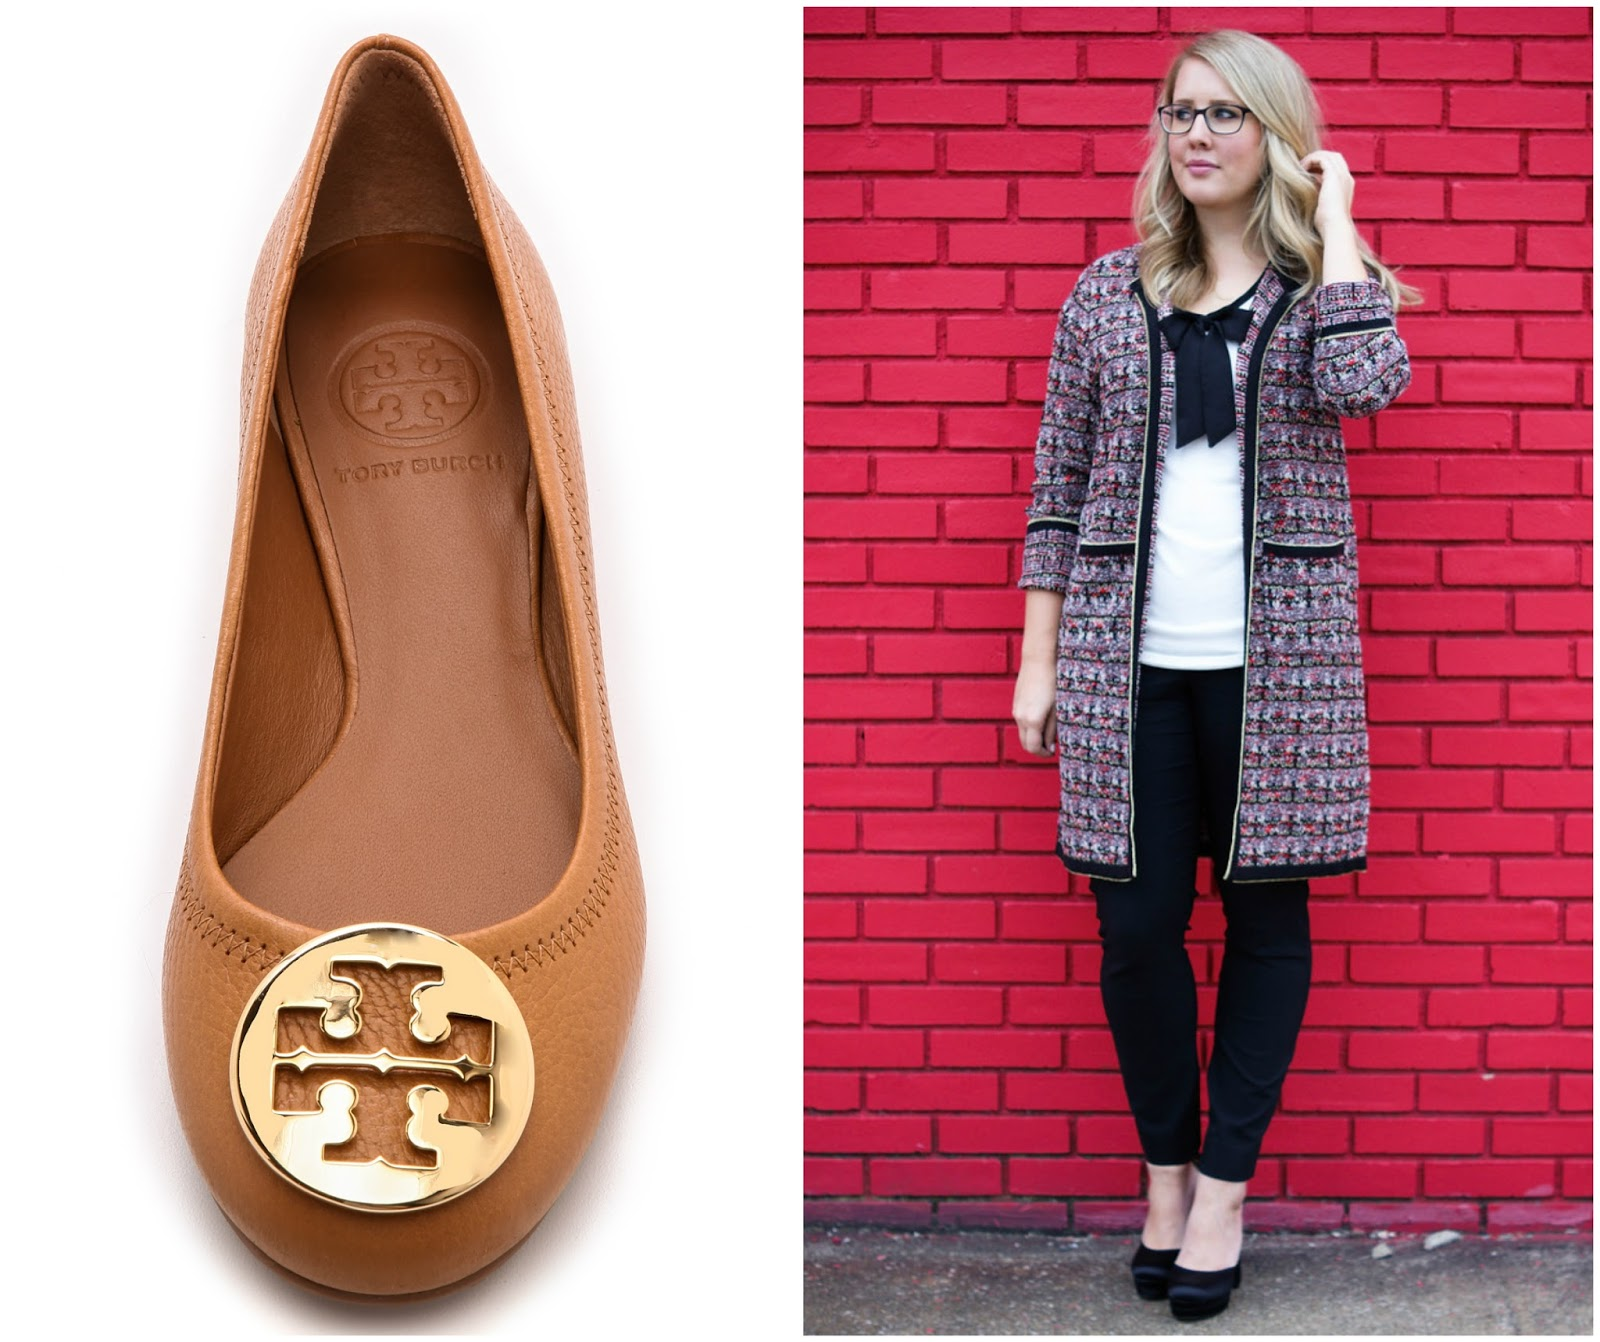 On the sponsorship side of things, I saved up Shopbop credits to order the  tan Tory Burch revas. I also collaborated with New York and Company and  received ...